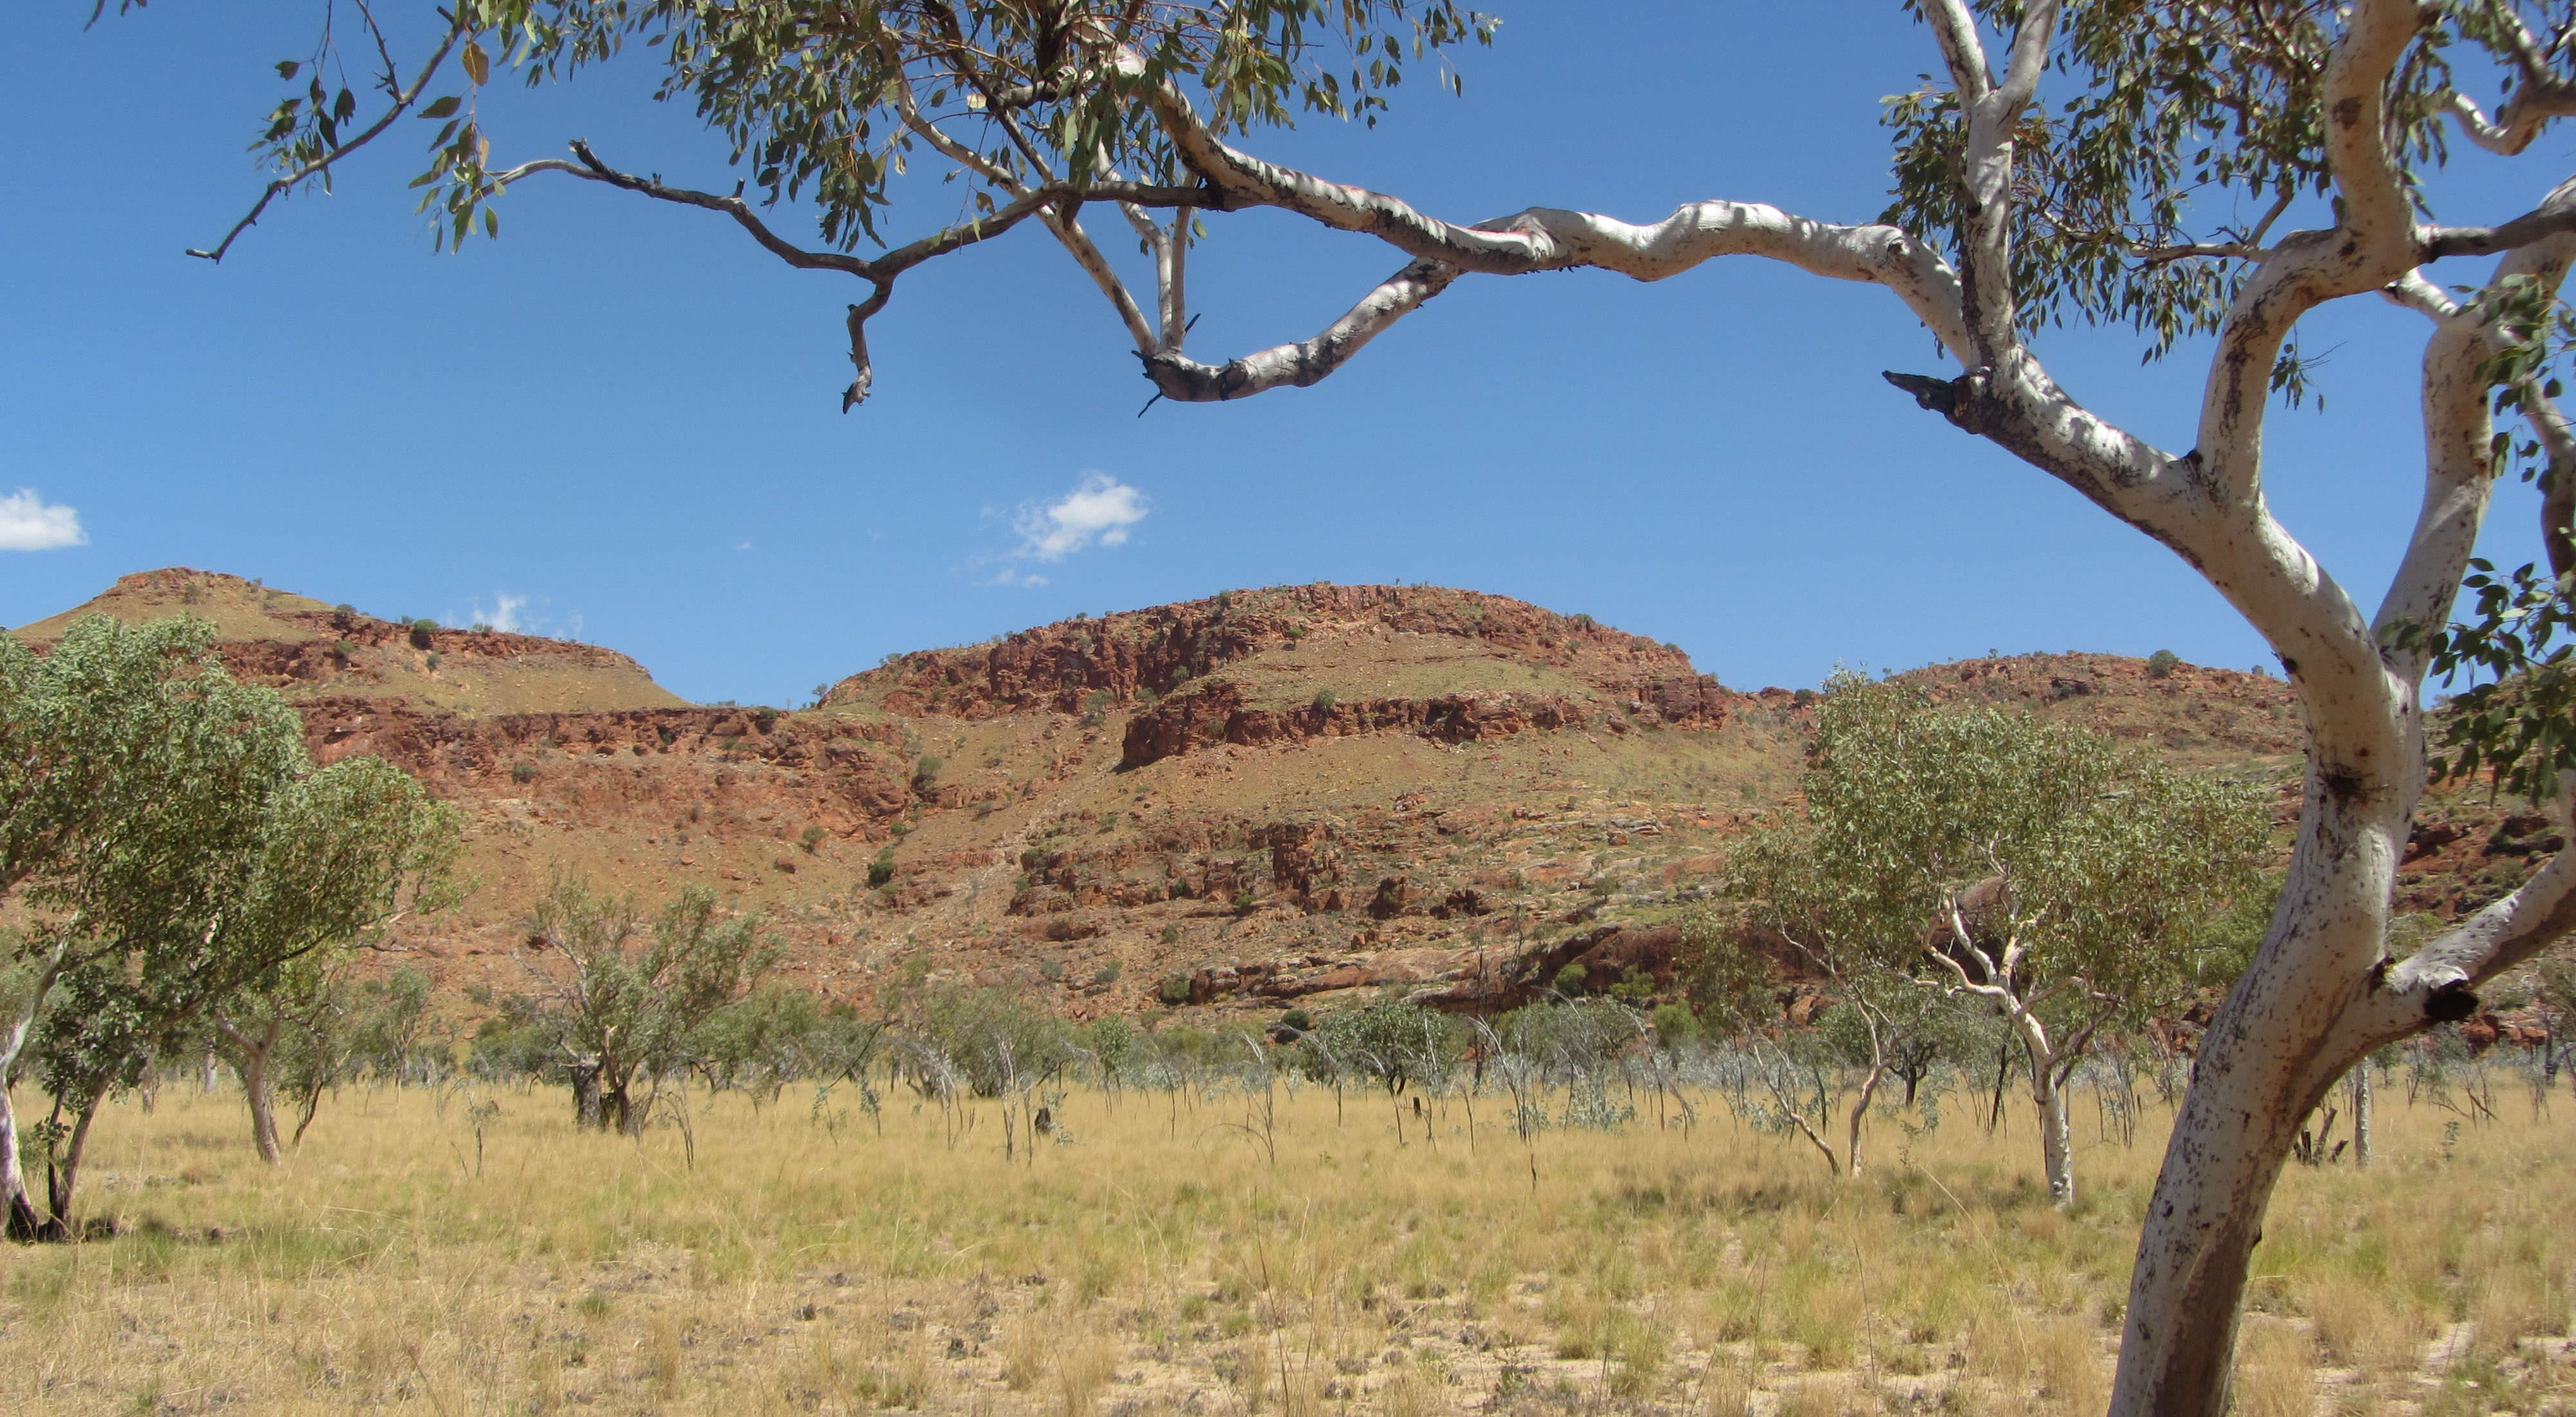 in the Kimberley region of far north Western Australia